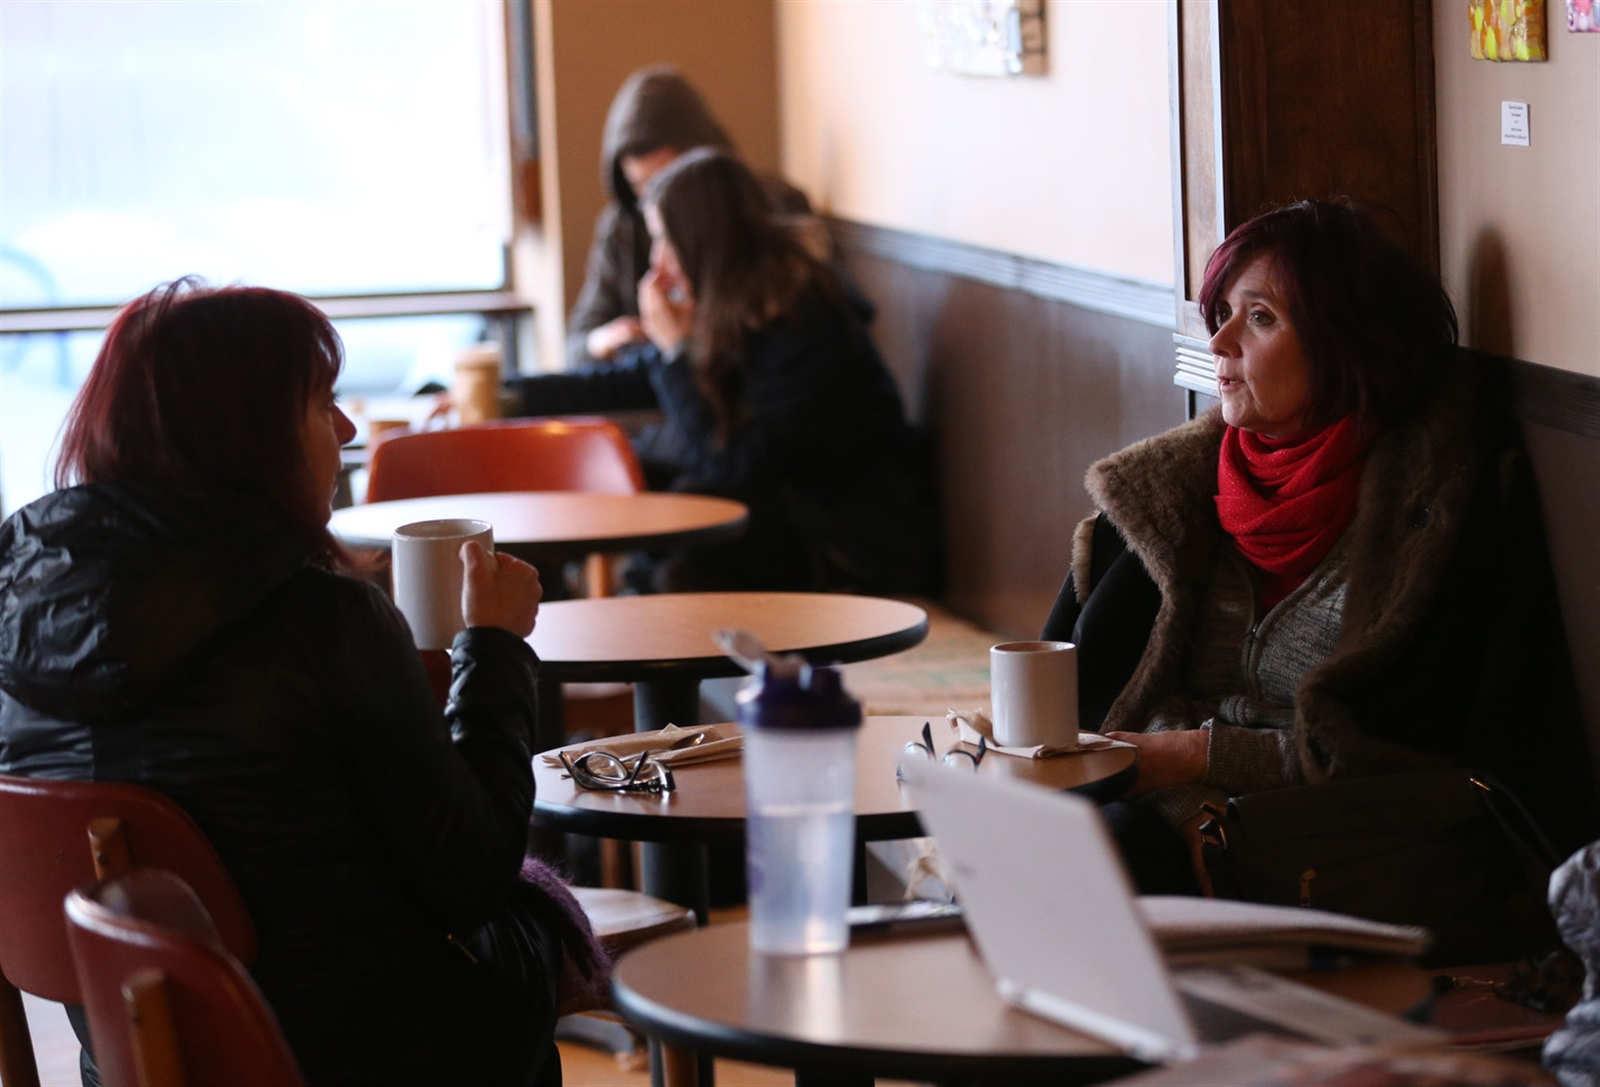 Barbara Bauers, left, of Buffalo and Colleen Enser of Grand Island enjoy some coffee and conversation.